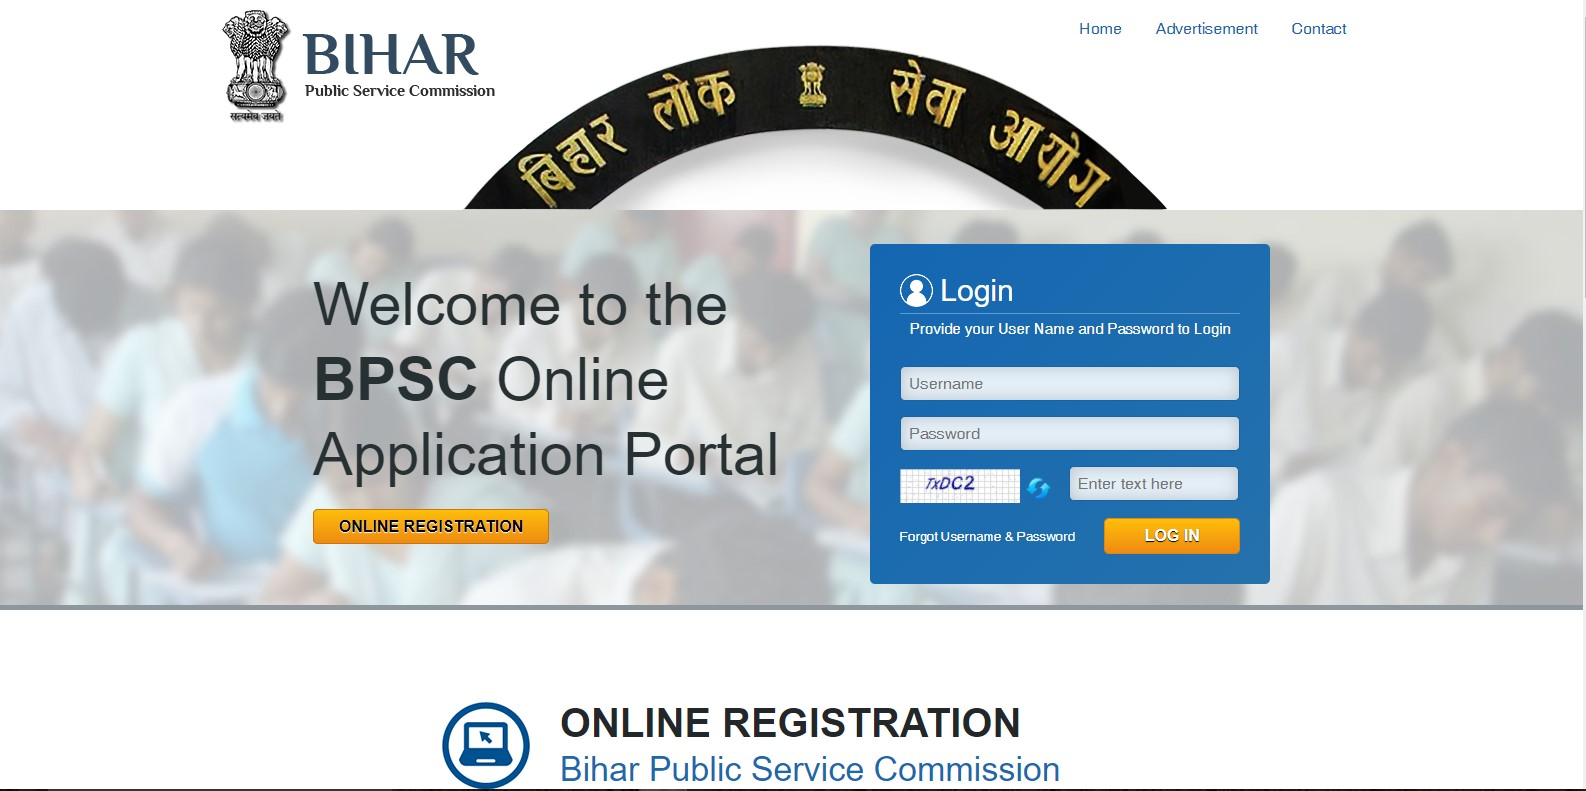 BPSC Application Form 2020